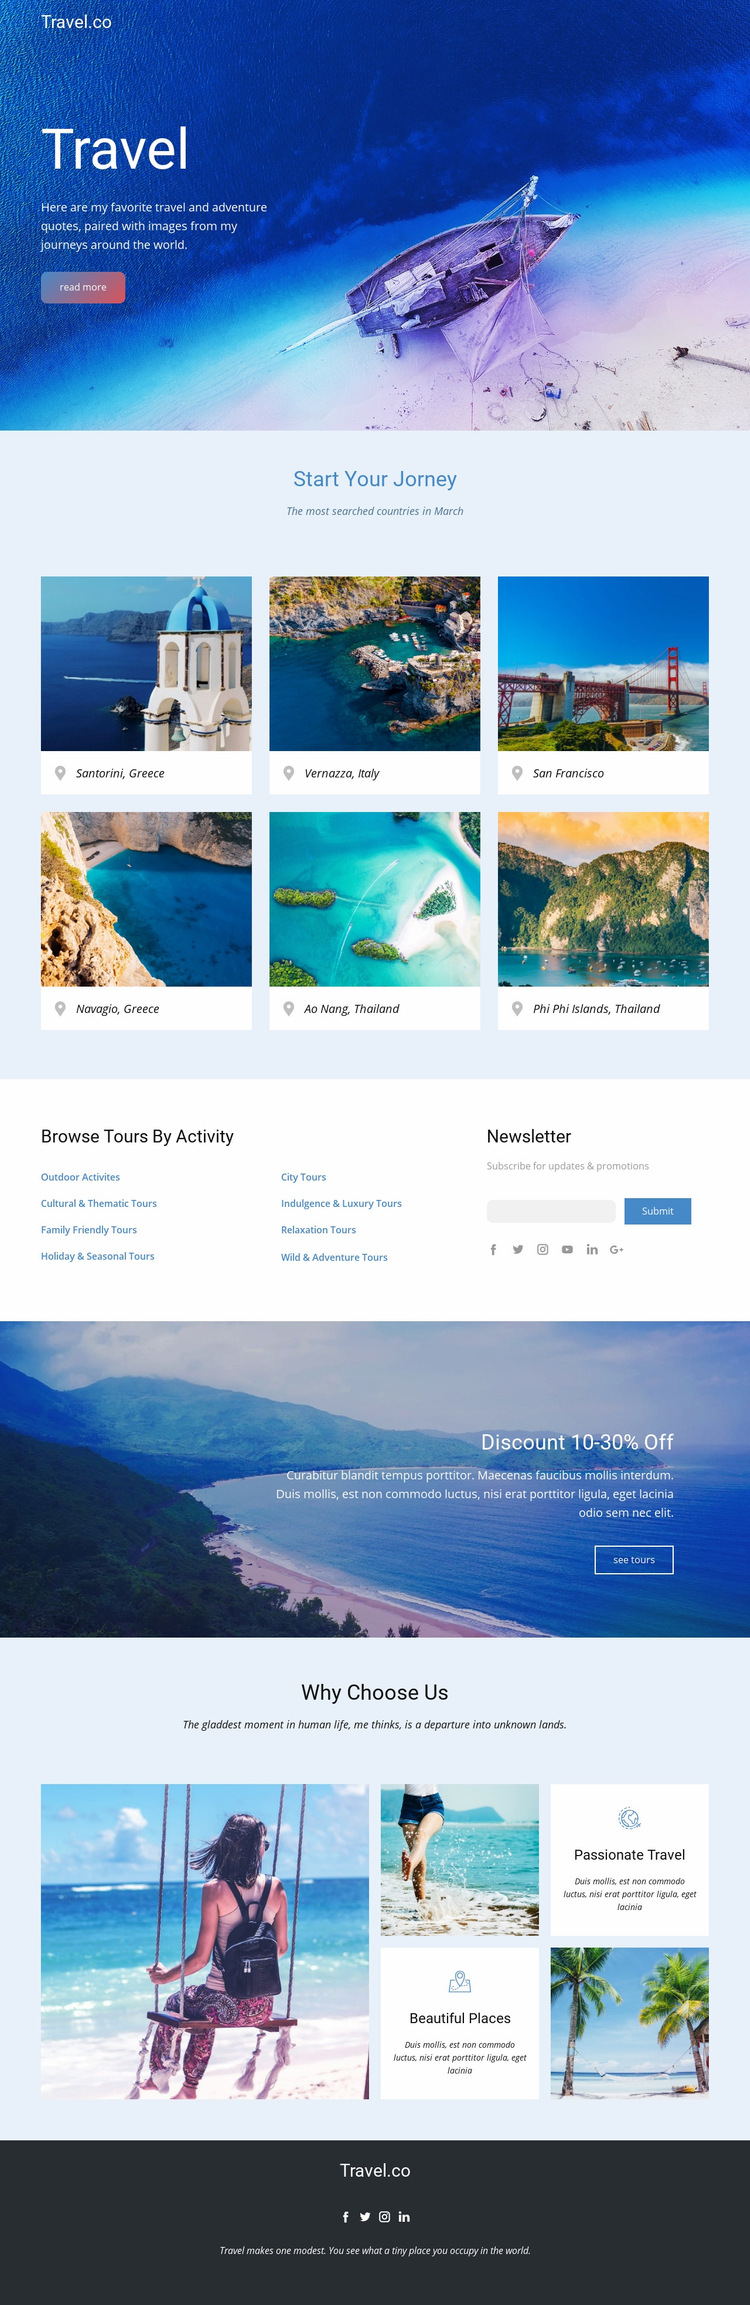 Amazing ideas for travel Web Page Design